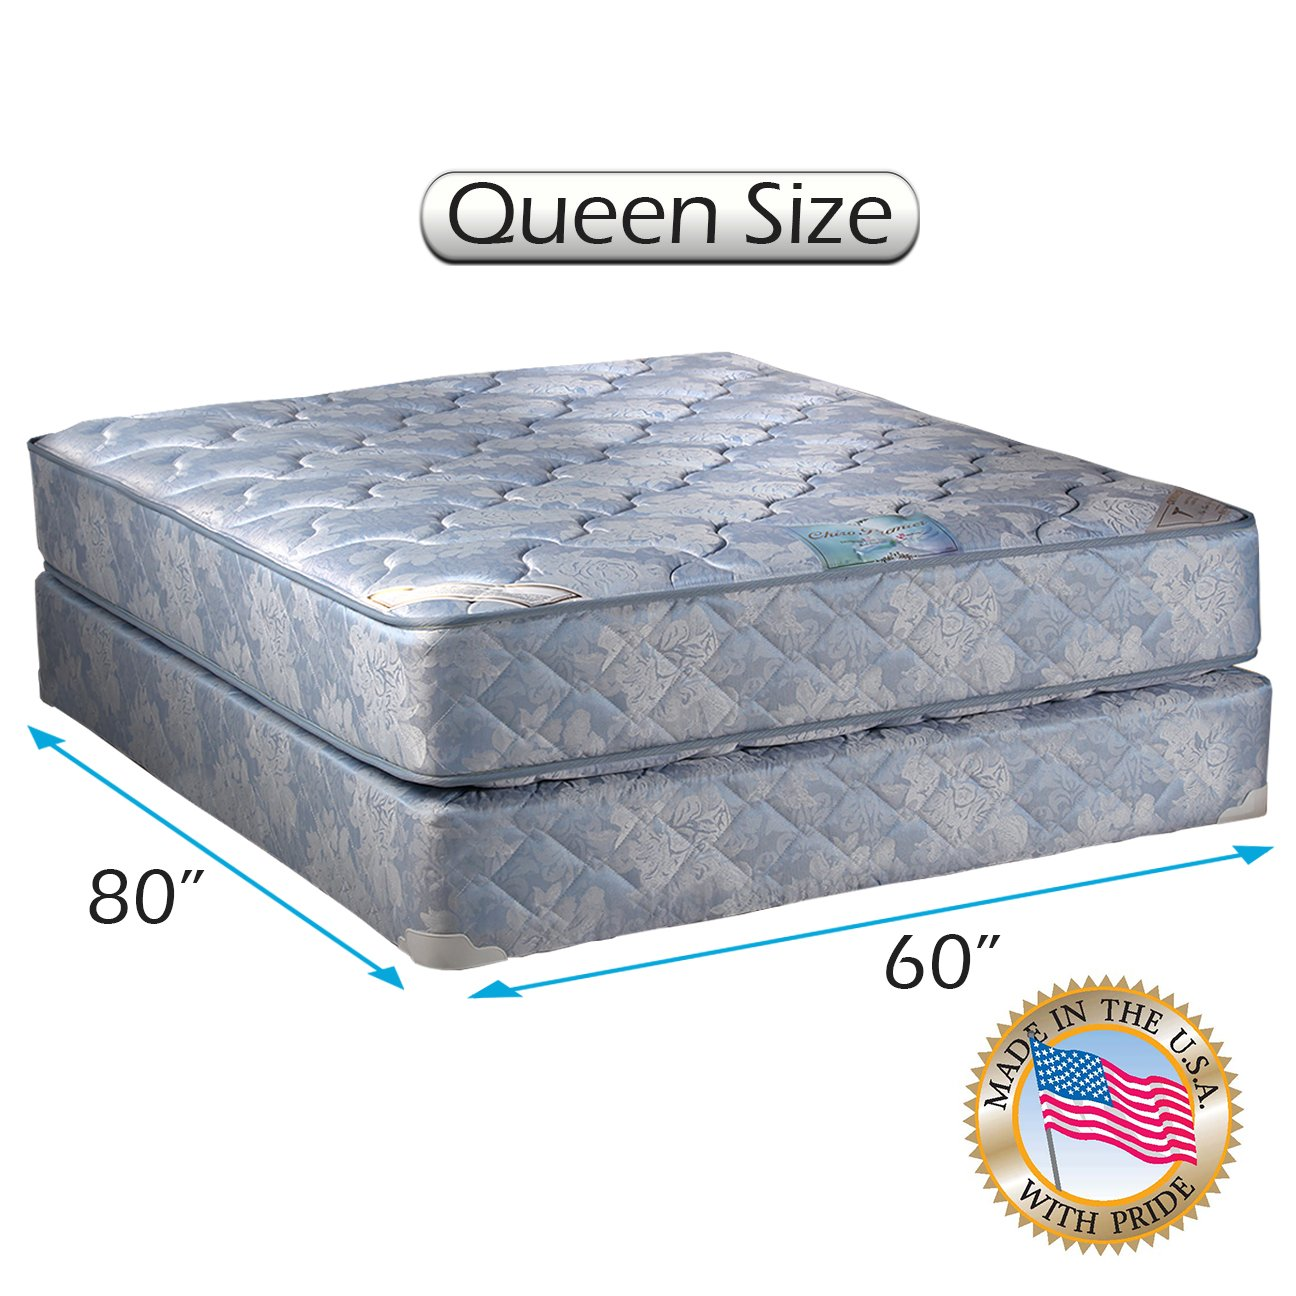 Chiro Premier Gentle Firm Orthopedic (Blue Color) Queen Size 60''x80''x9'' Mattress and Box Spring Set - Fully Assembled, Good for Your Back, Long Lasting and 2 Sided by Dream Solutions USA